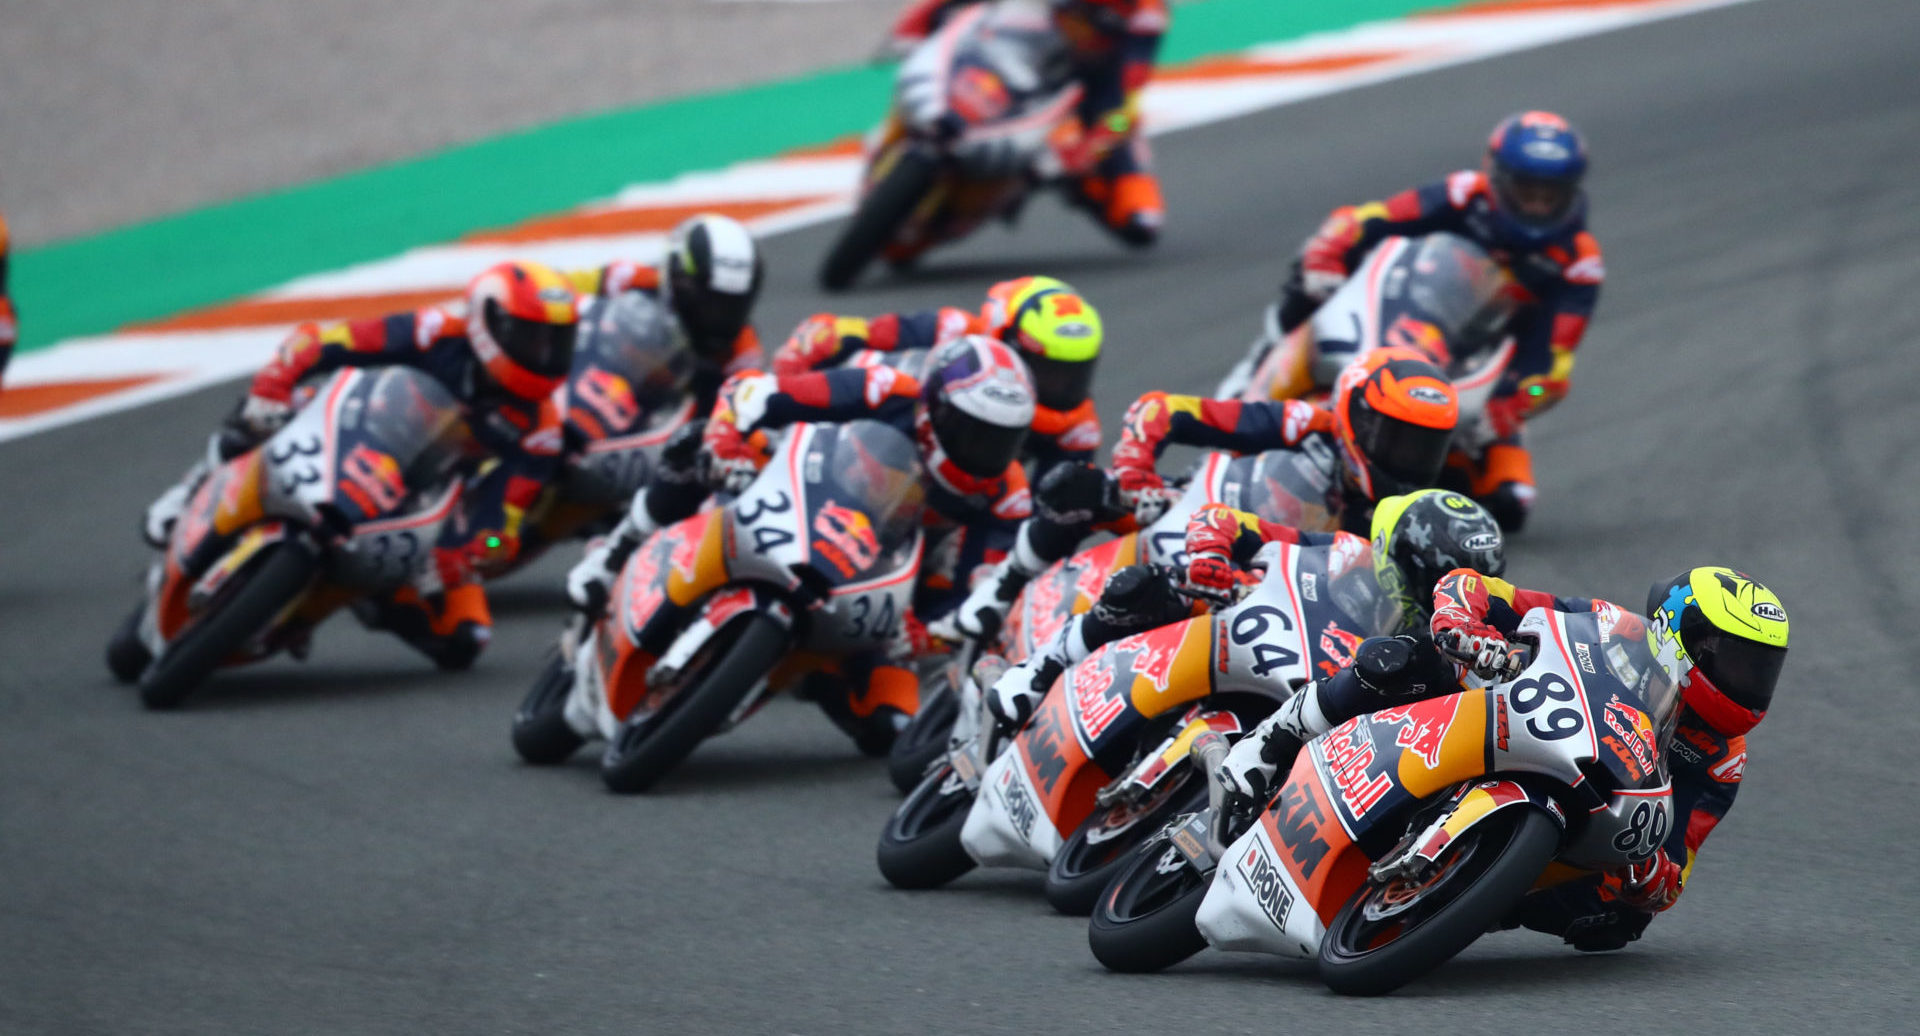 Marcos Uriarte (89) leads a pack of Red Bull MotoGP Rookies during Race One at Valencia II. Photo courtesy Red Bull.